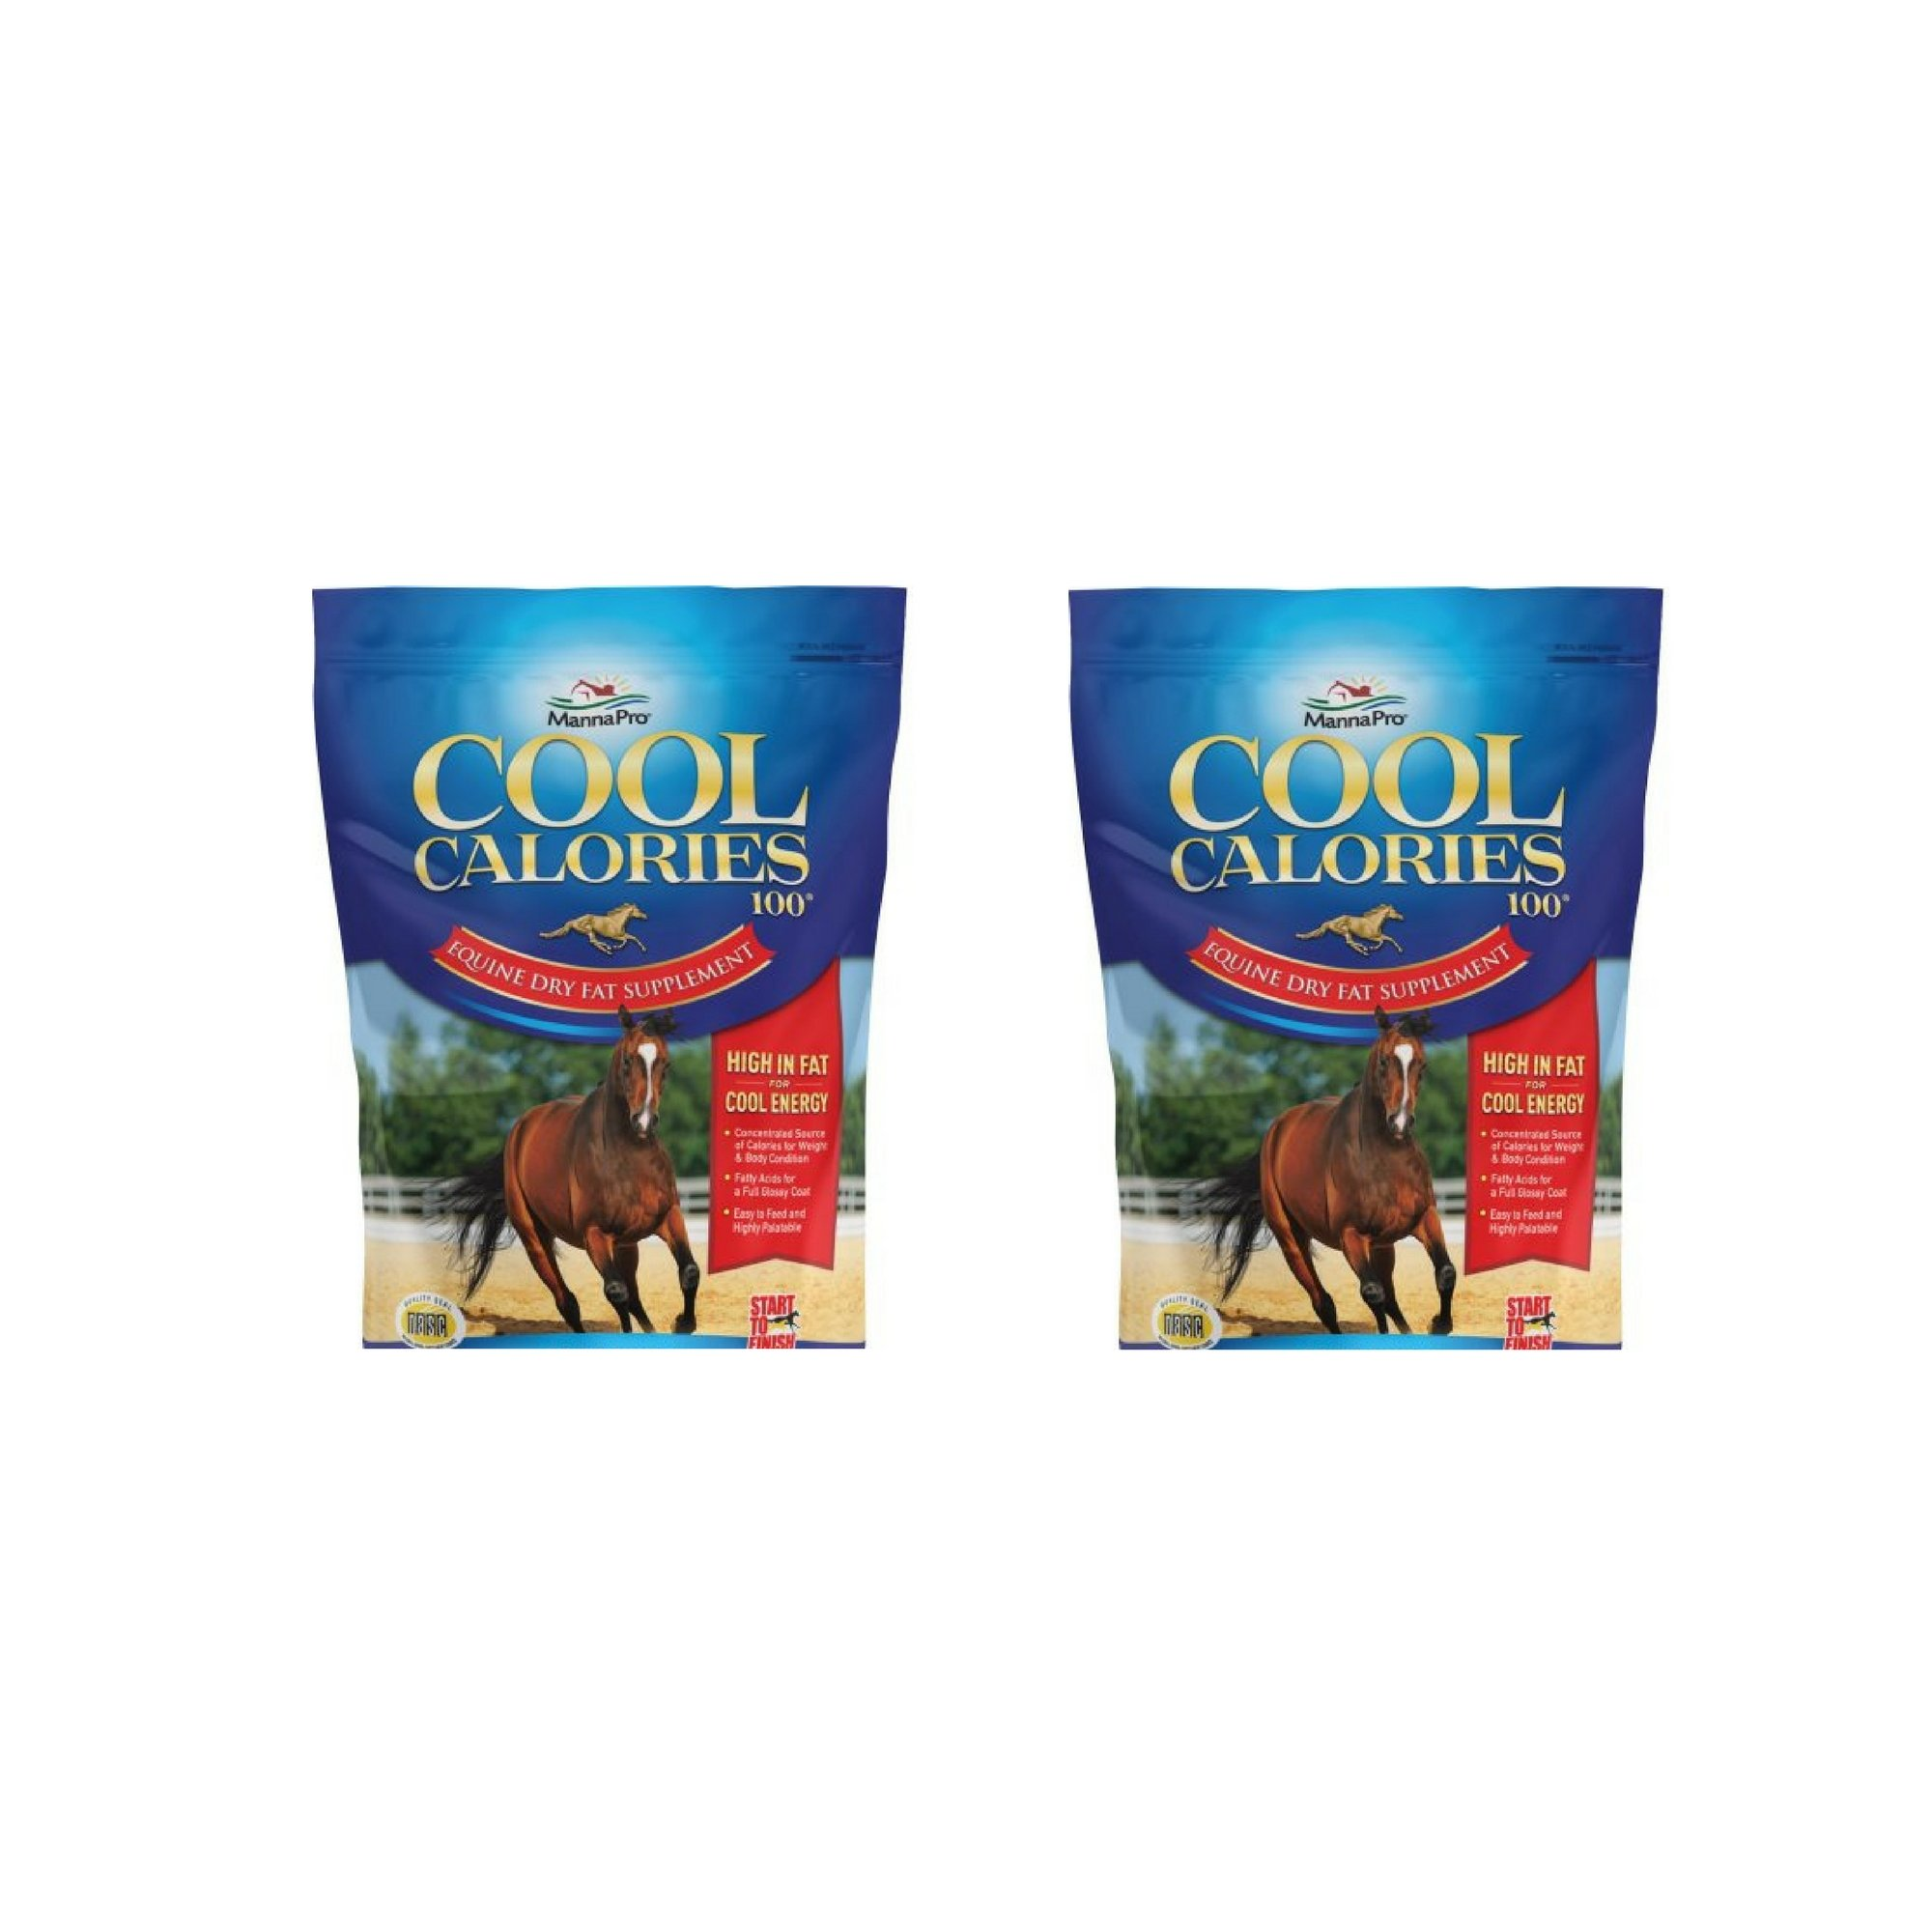 Manna Pro Start to Finish Cool Calories 100, 8 lb - 2 Pack